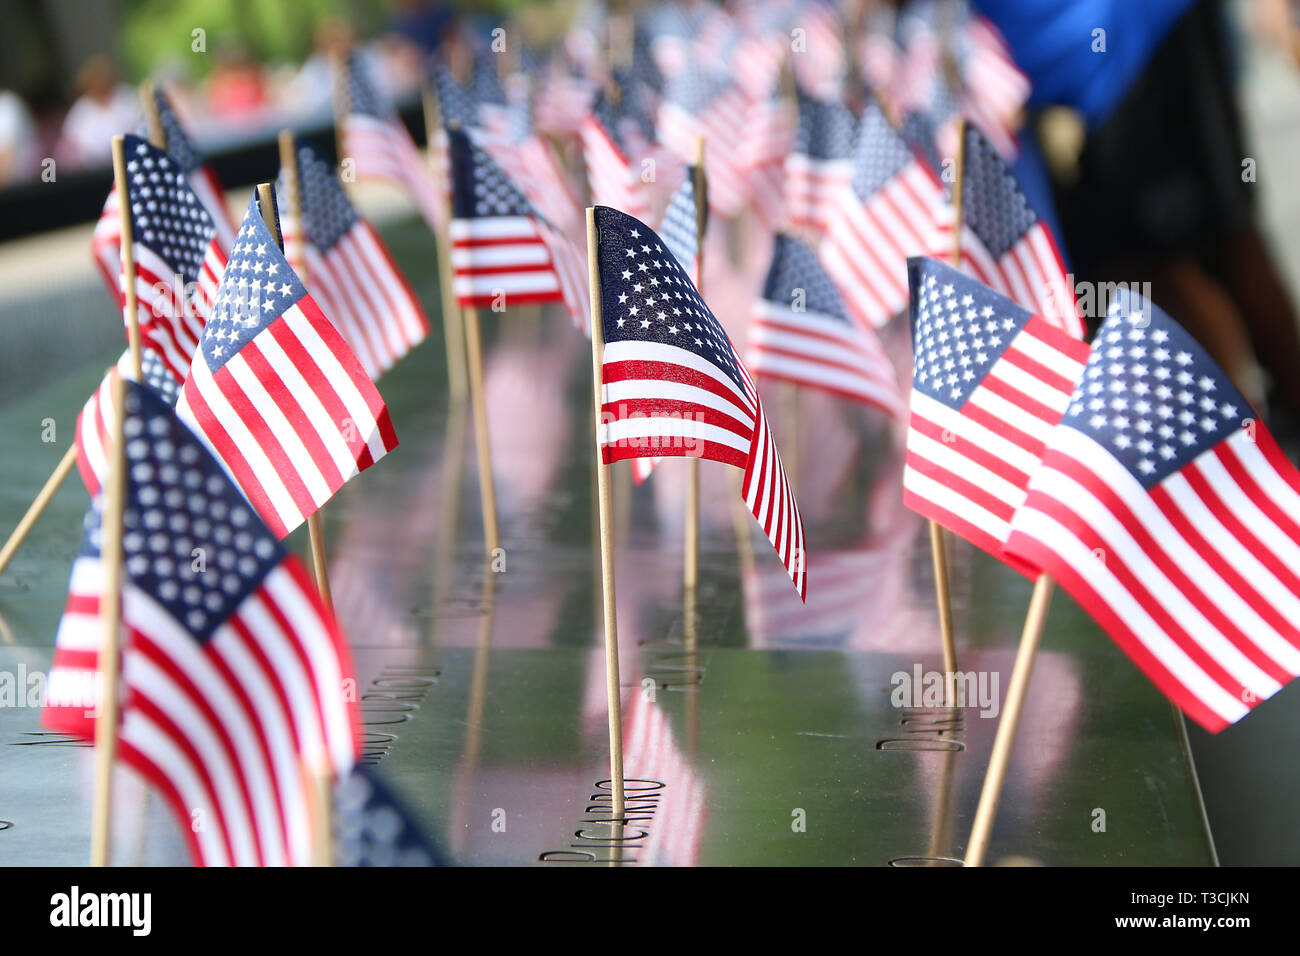 Flags at National September 11 Memorial, NYC 4th July - Stock Image